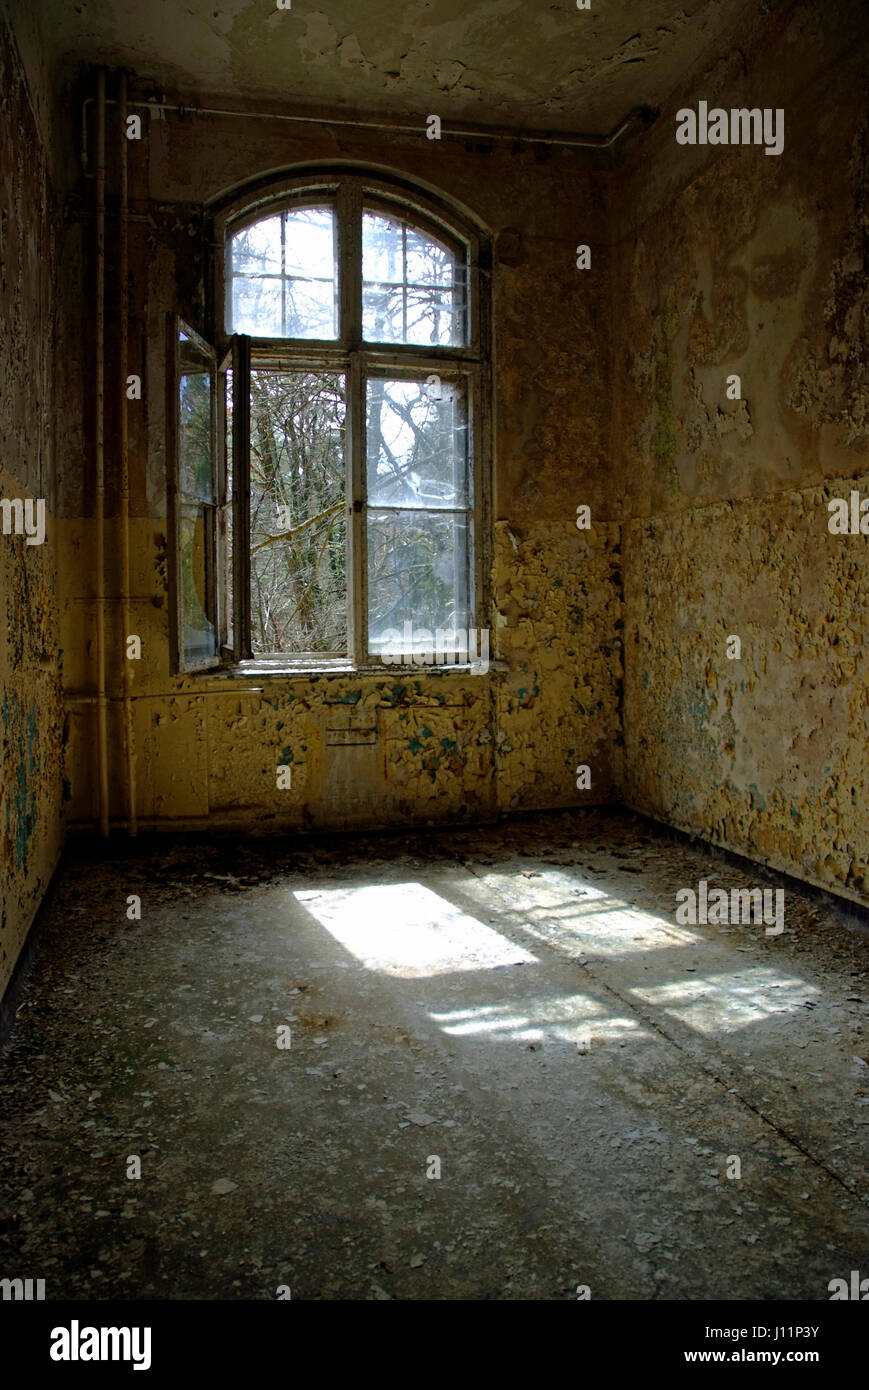 Open window in an abandoned house - Stock Image